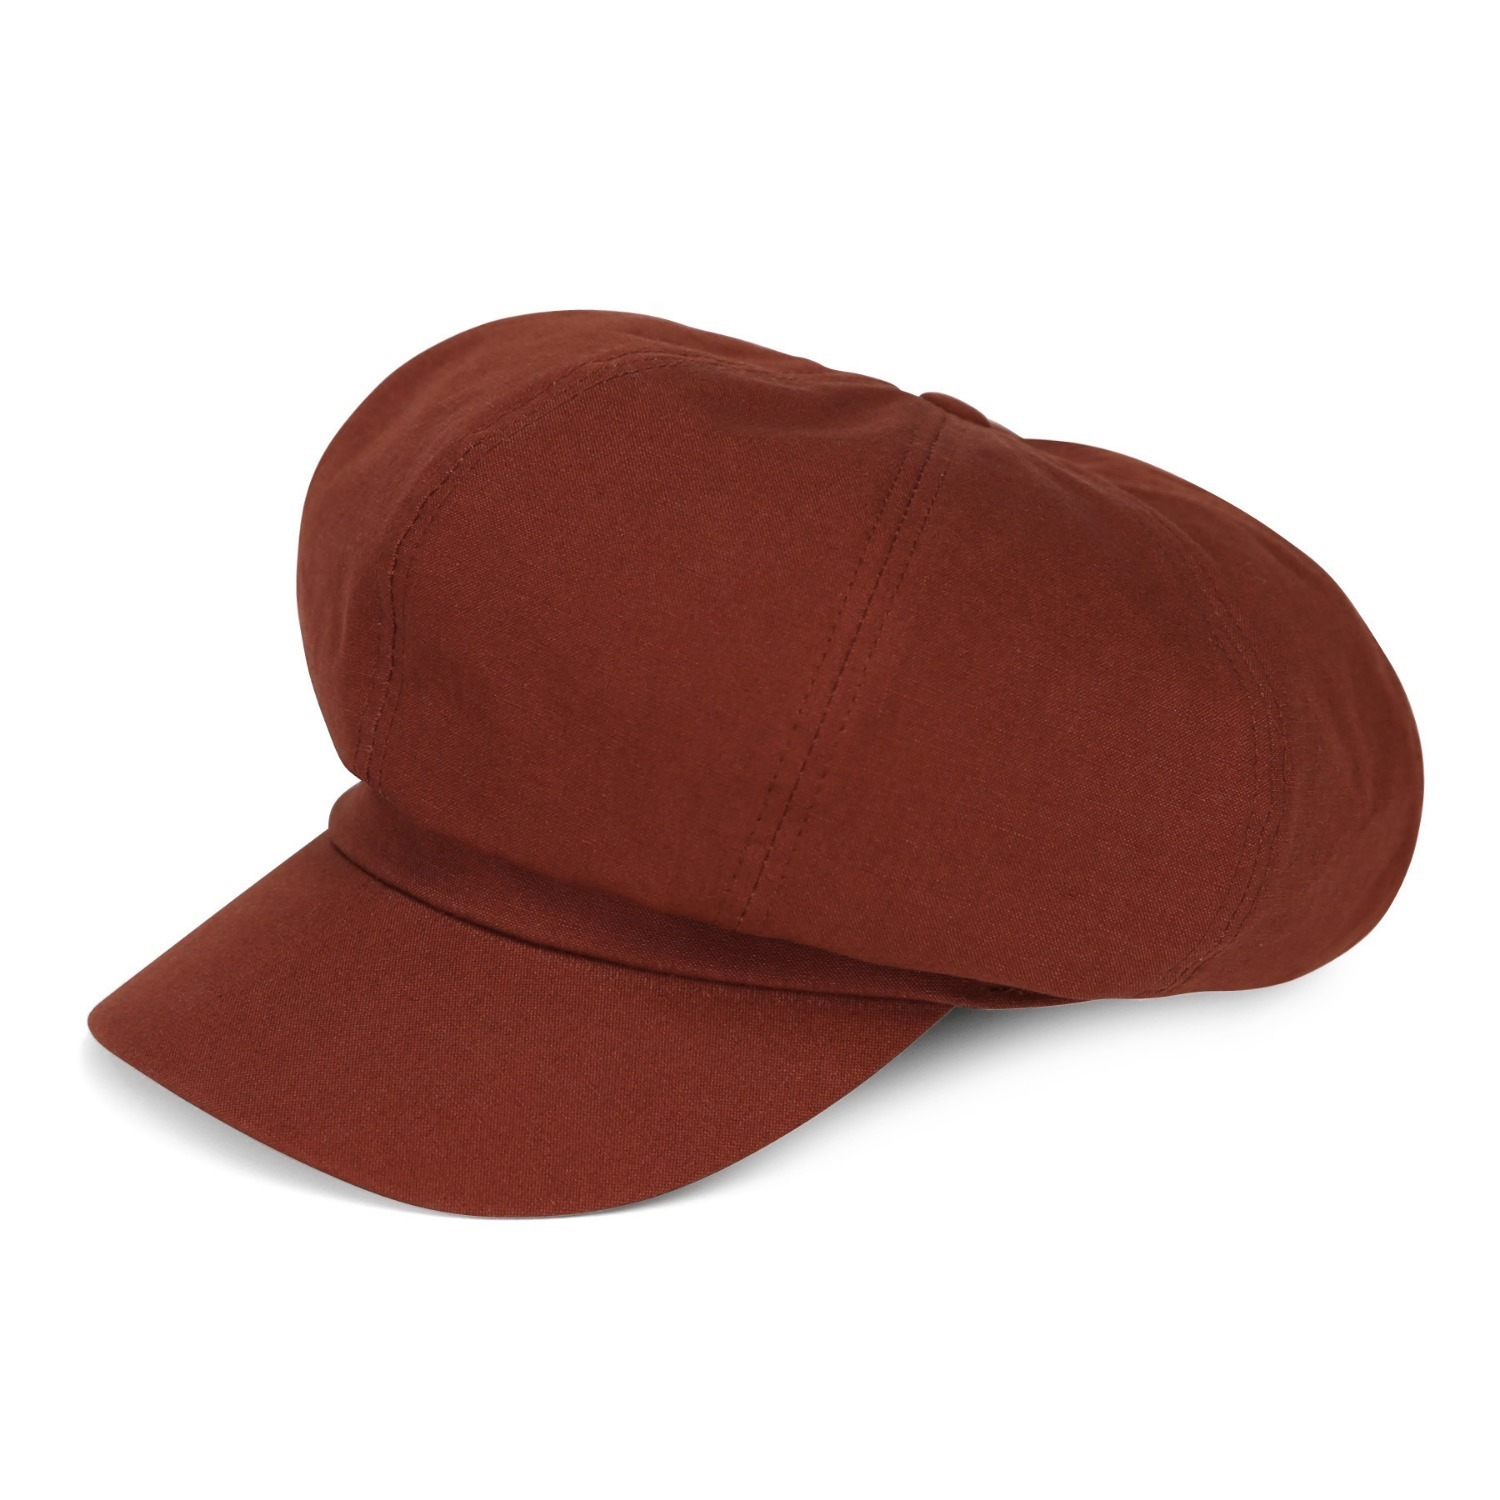 CASTRO BERET / SEED BIO / SUNSET RED